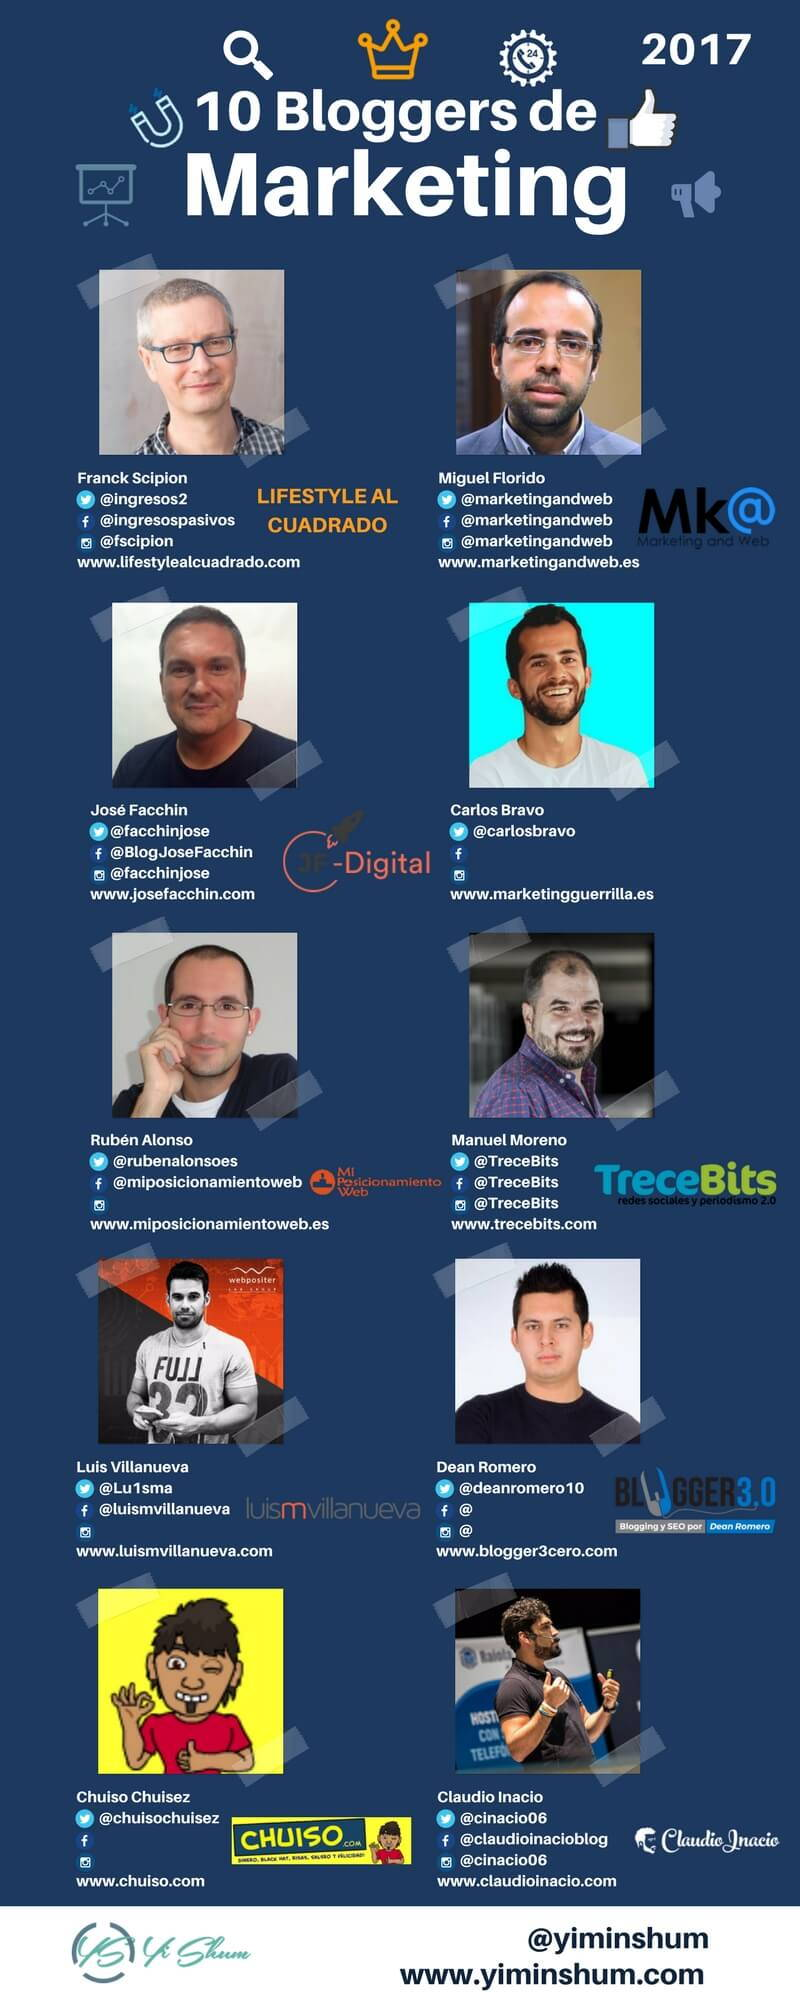 los 10 bloggers de marketing digital mas influyentes 2017 imagen